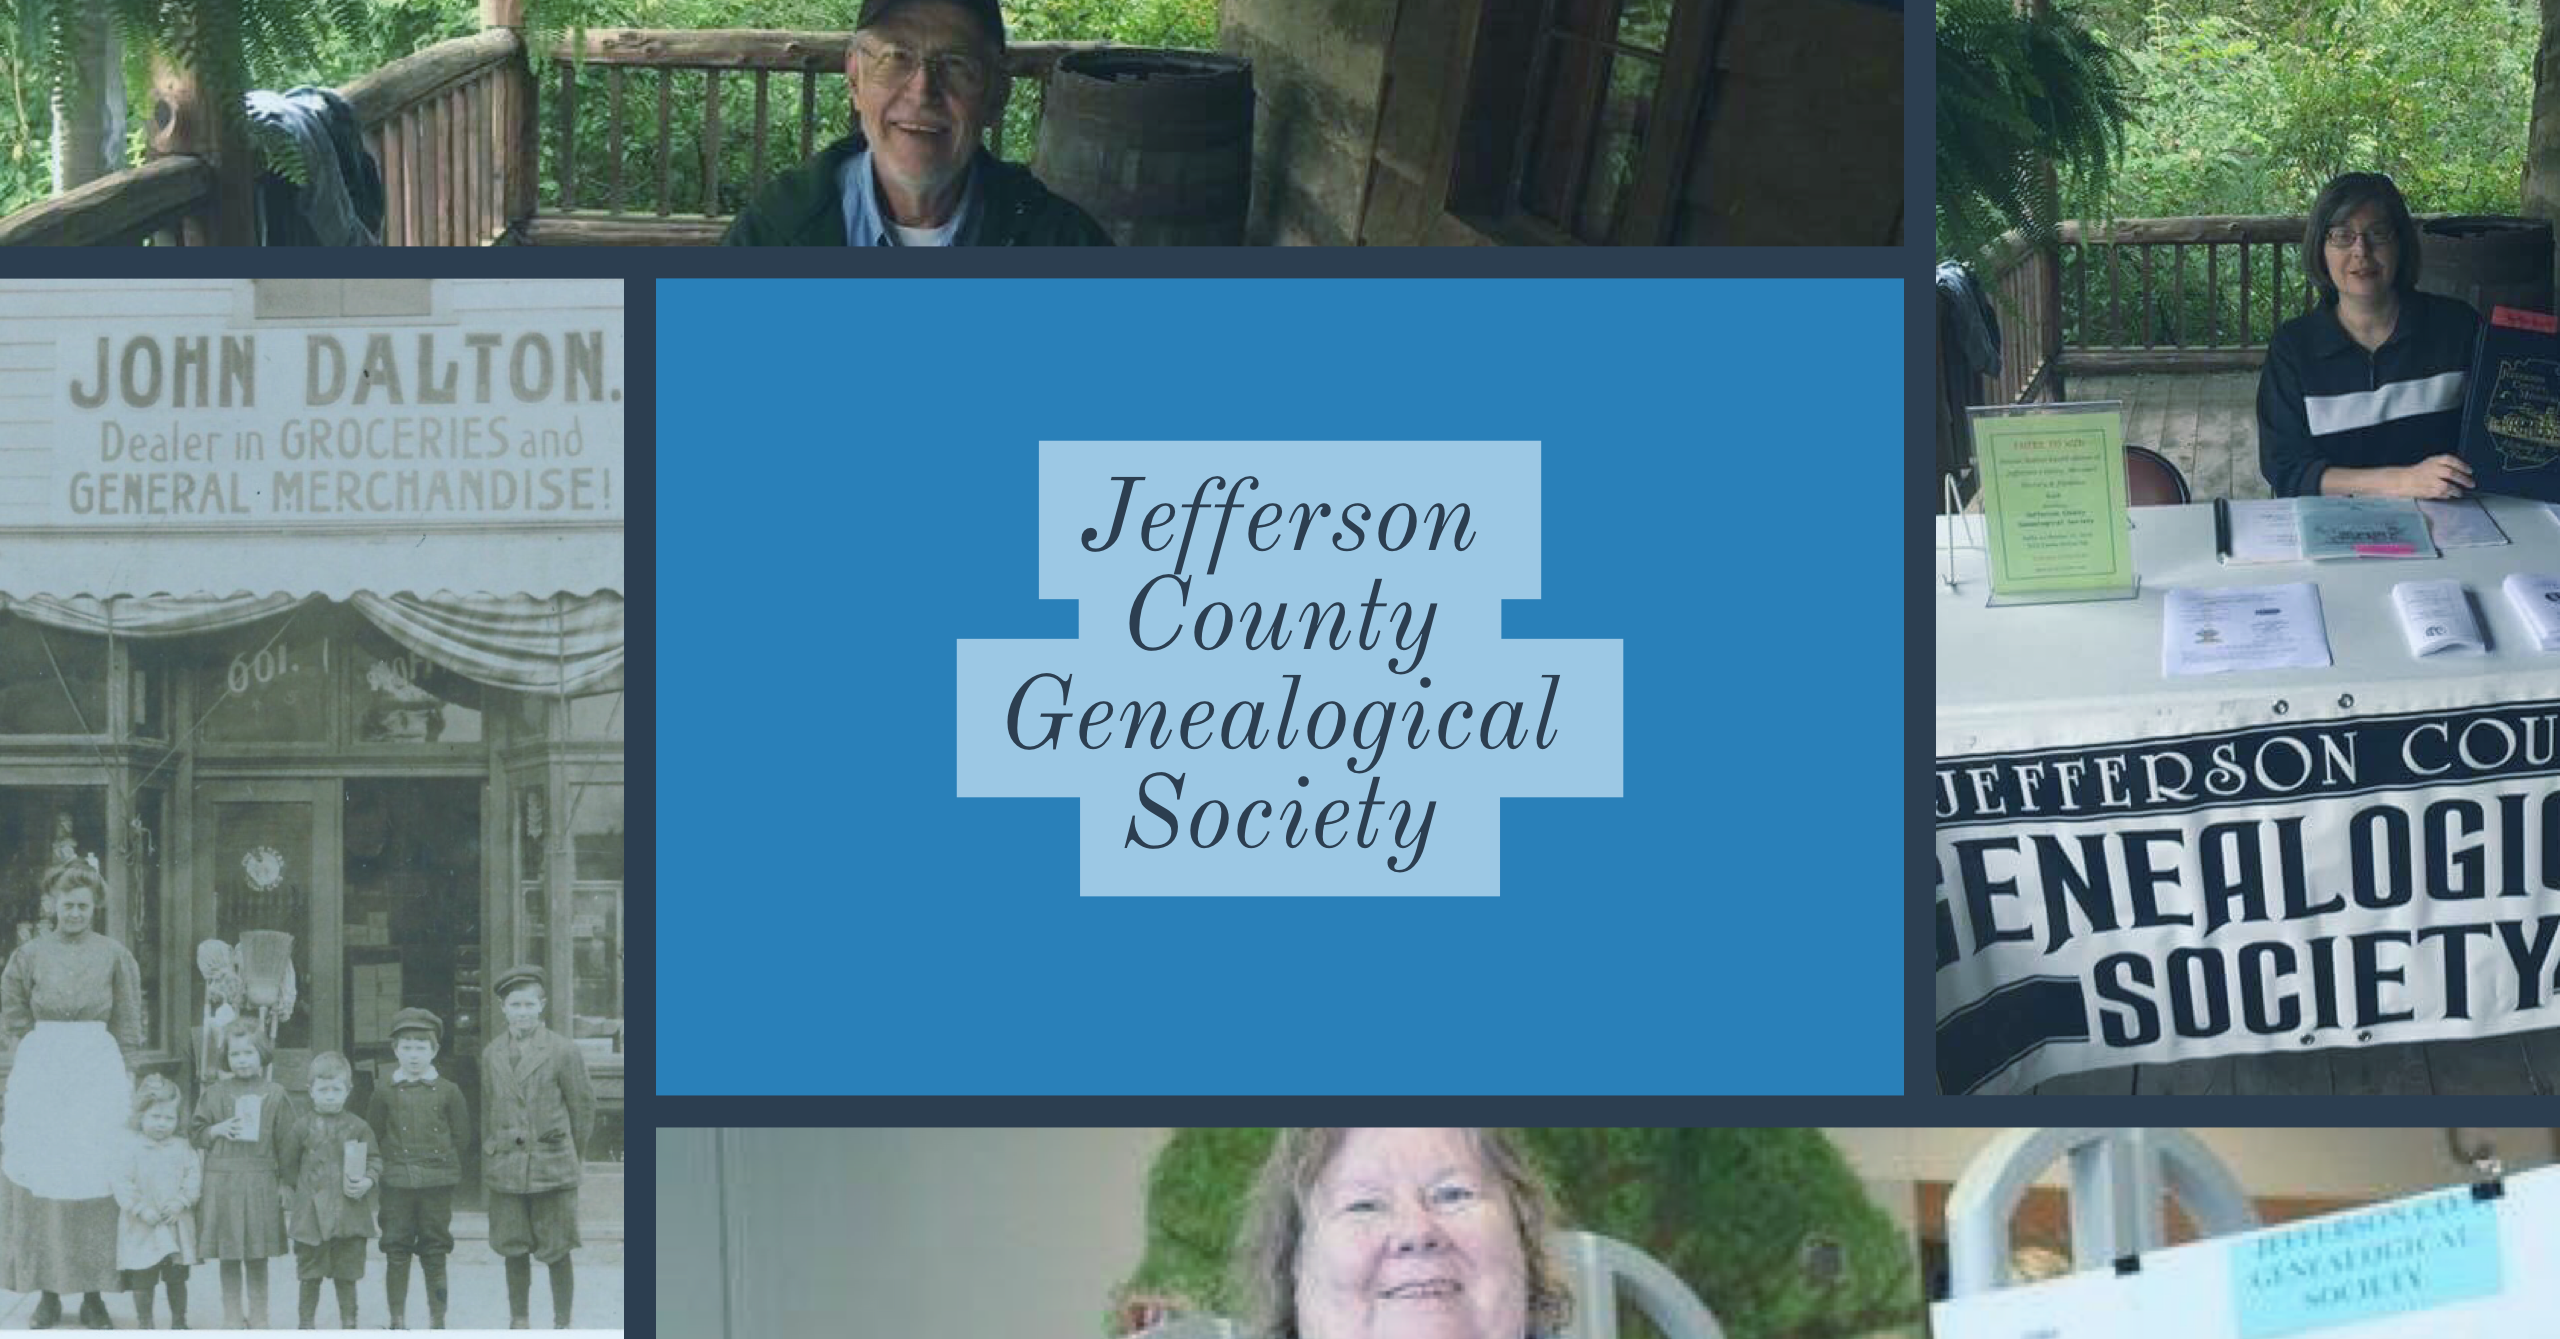 Celebrate 20 years of Jefferson County Genealogical Society